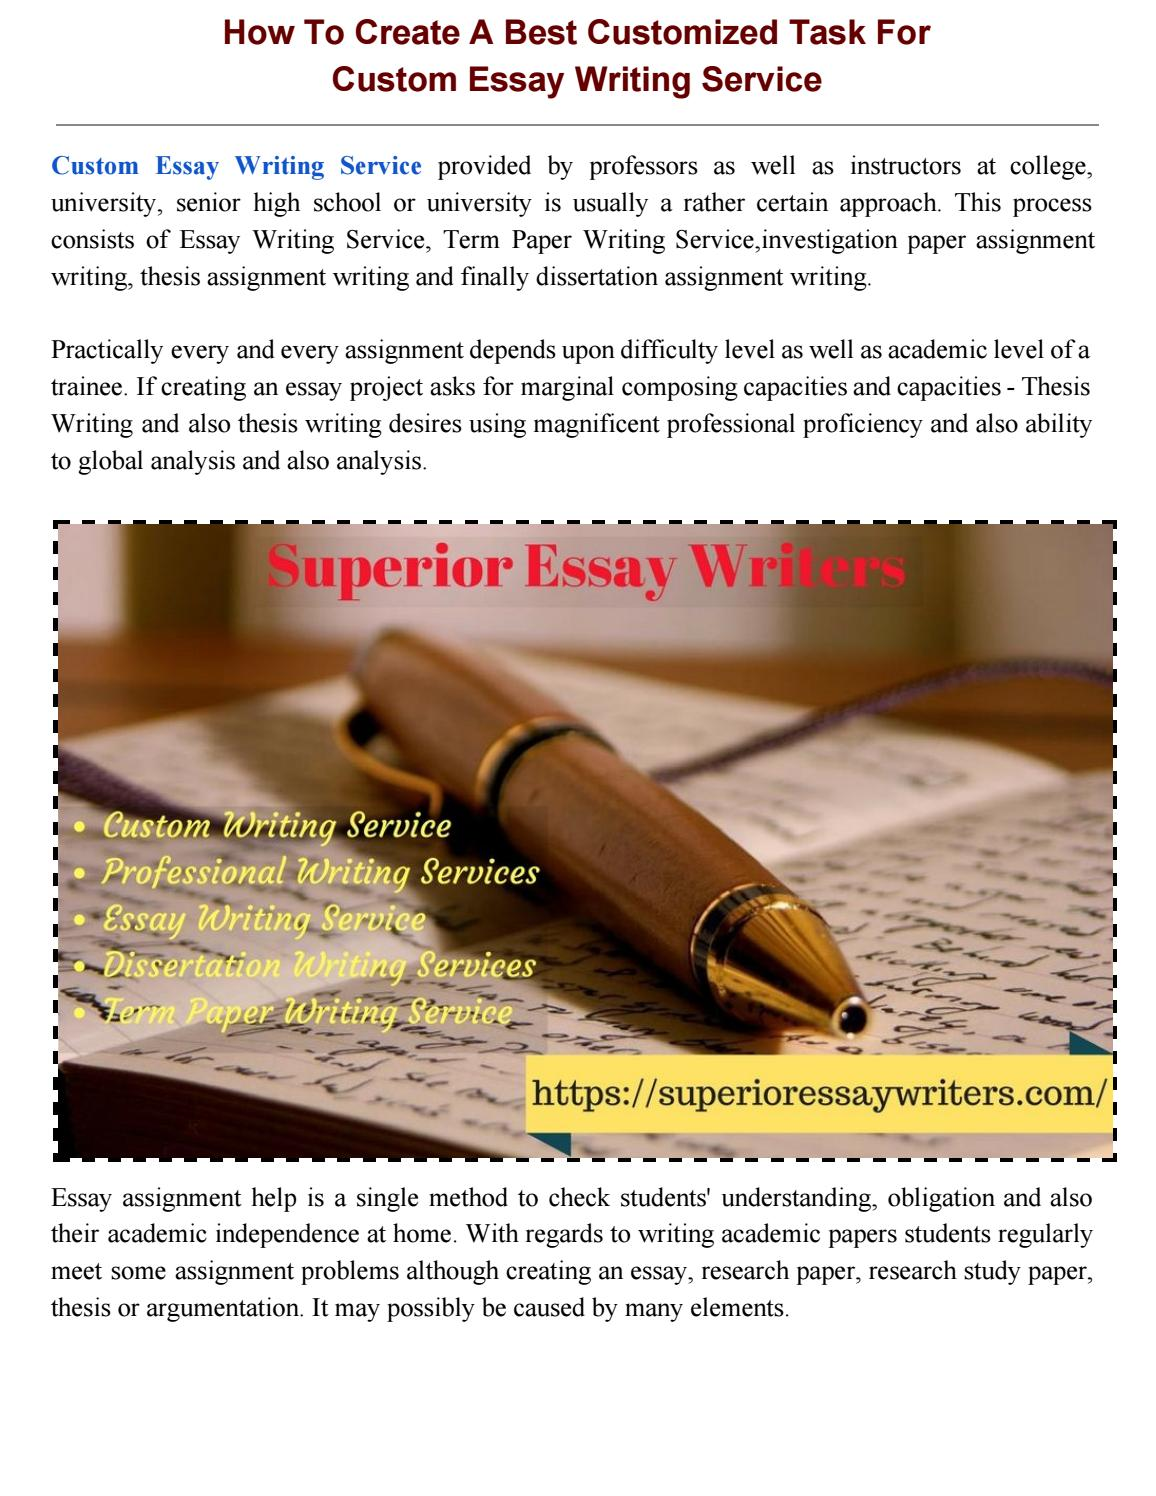 Argument Essay Topics For High School Essay Pdf Ppt Essays About Global Warming Persons Case  Essay Research  Paper On League Of Legends How To Write Literature Review In Dissertation   Essay On My Family In English also A Modest Proposal Ideas For Essays Dissertation Sur Le Memento Mori Short  Coaching E Gesto De  Proposal Argument Essay Examples